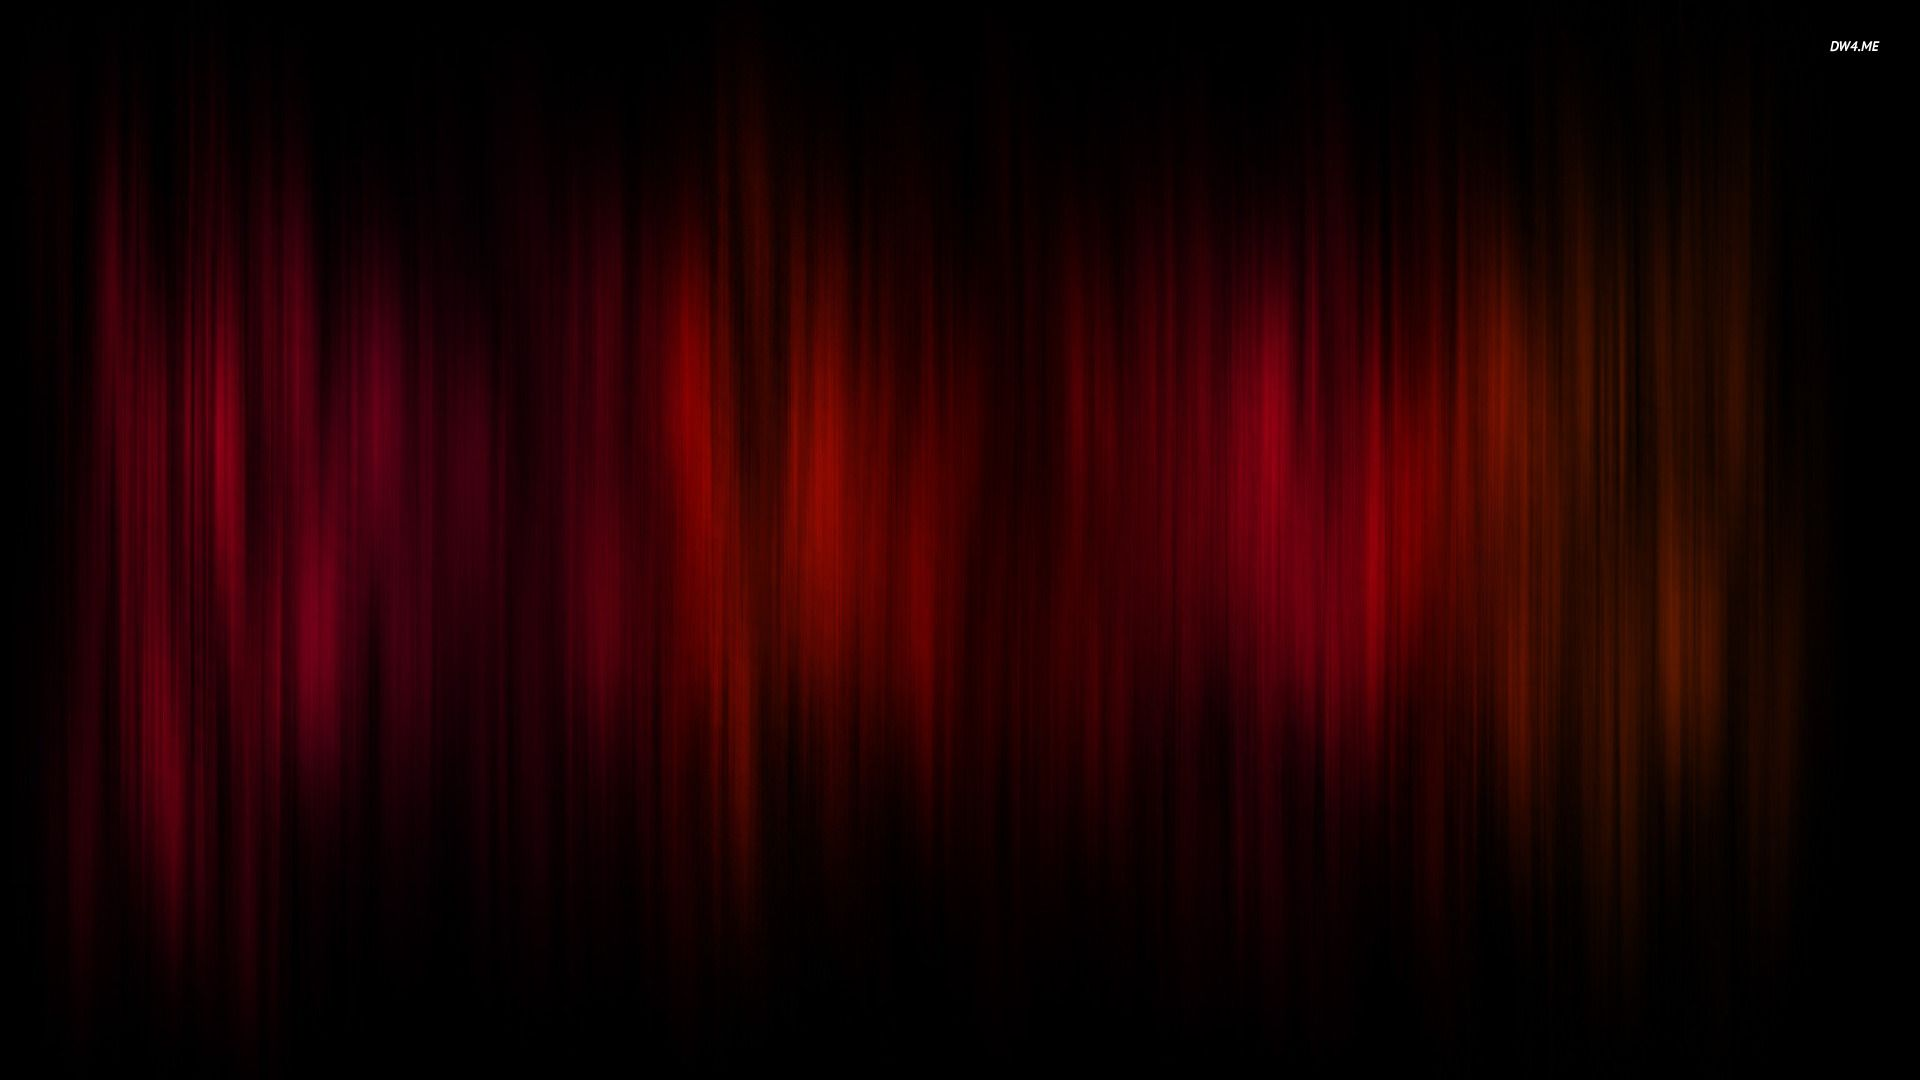 Collection Of Cool Red And Black Wallpapers On Hdwallpapers 1920 1200 Cool Red Wallpapers 54 Wallpapers Adora Red Wallpaper Red Images Red Colour Wallpaper